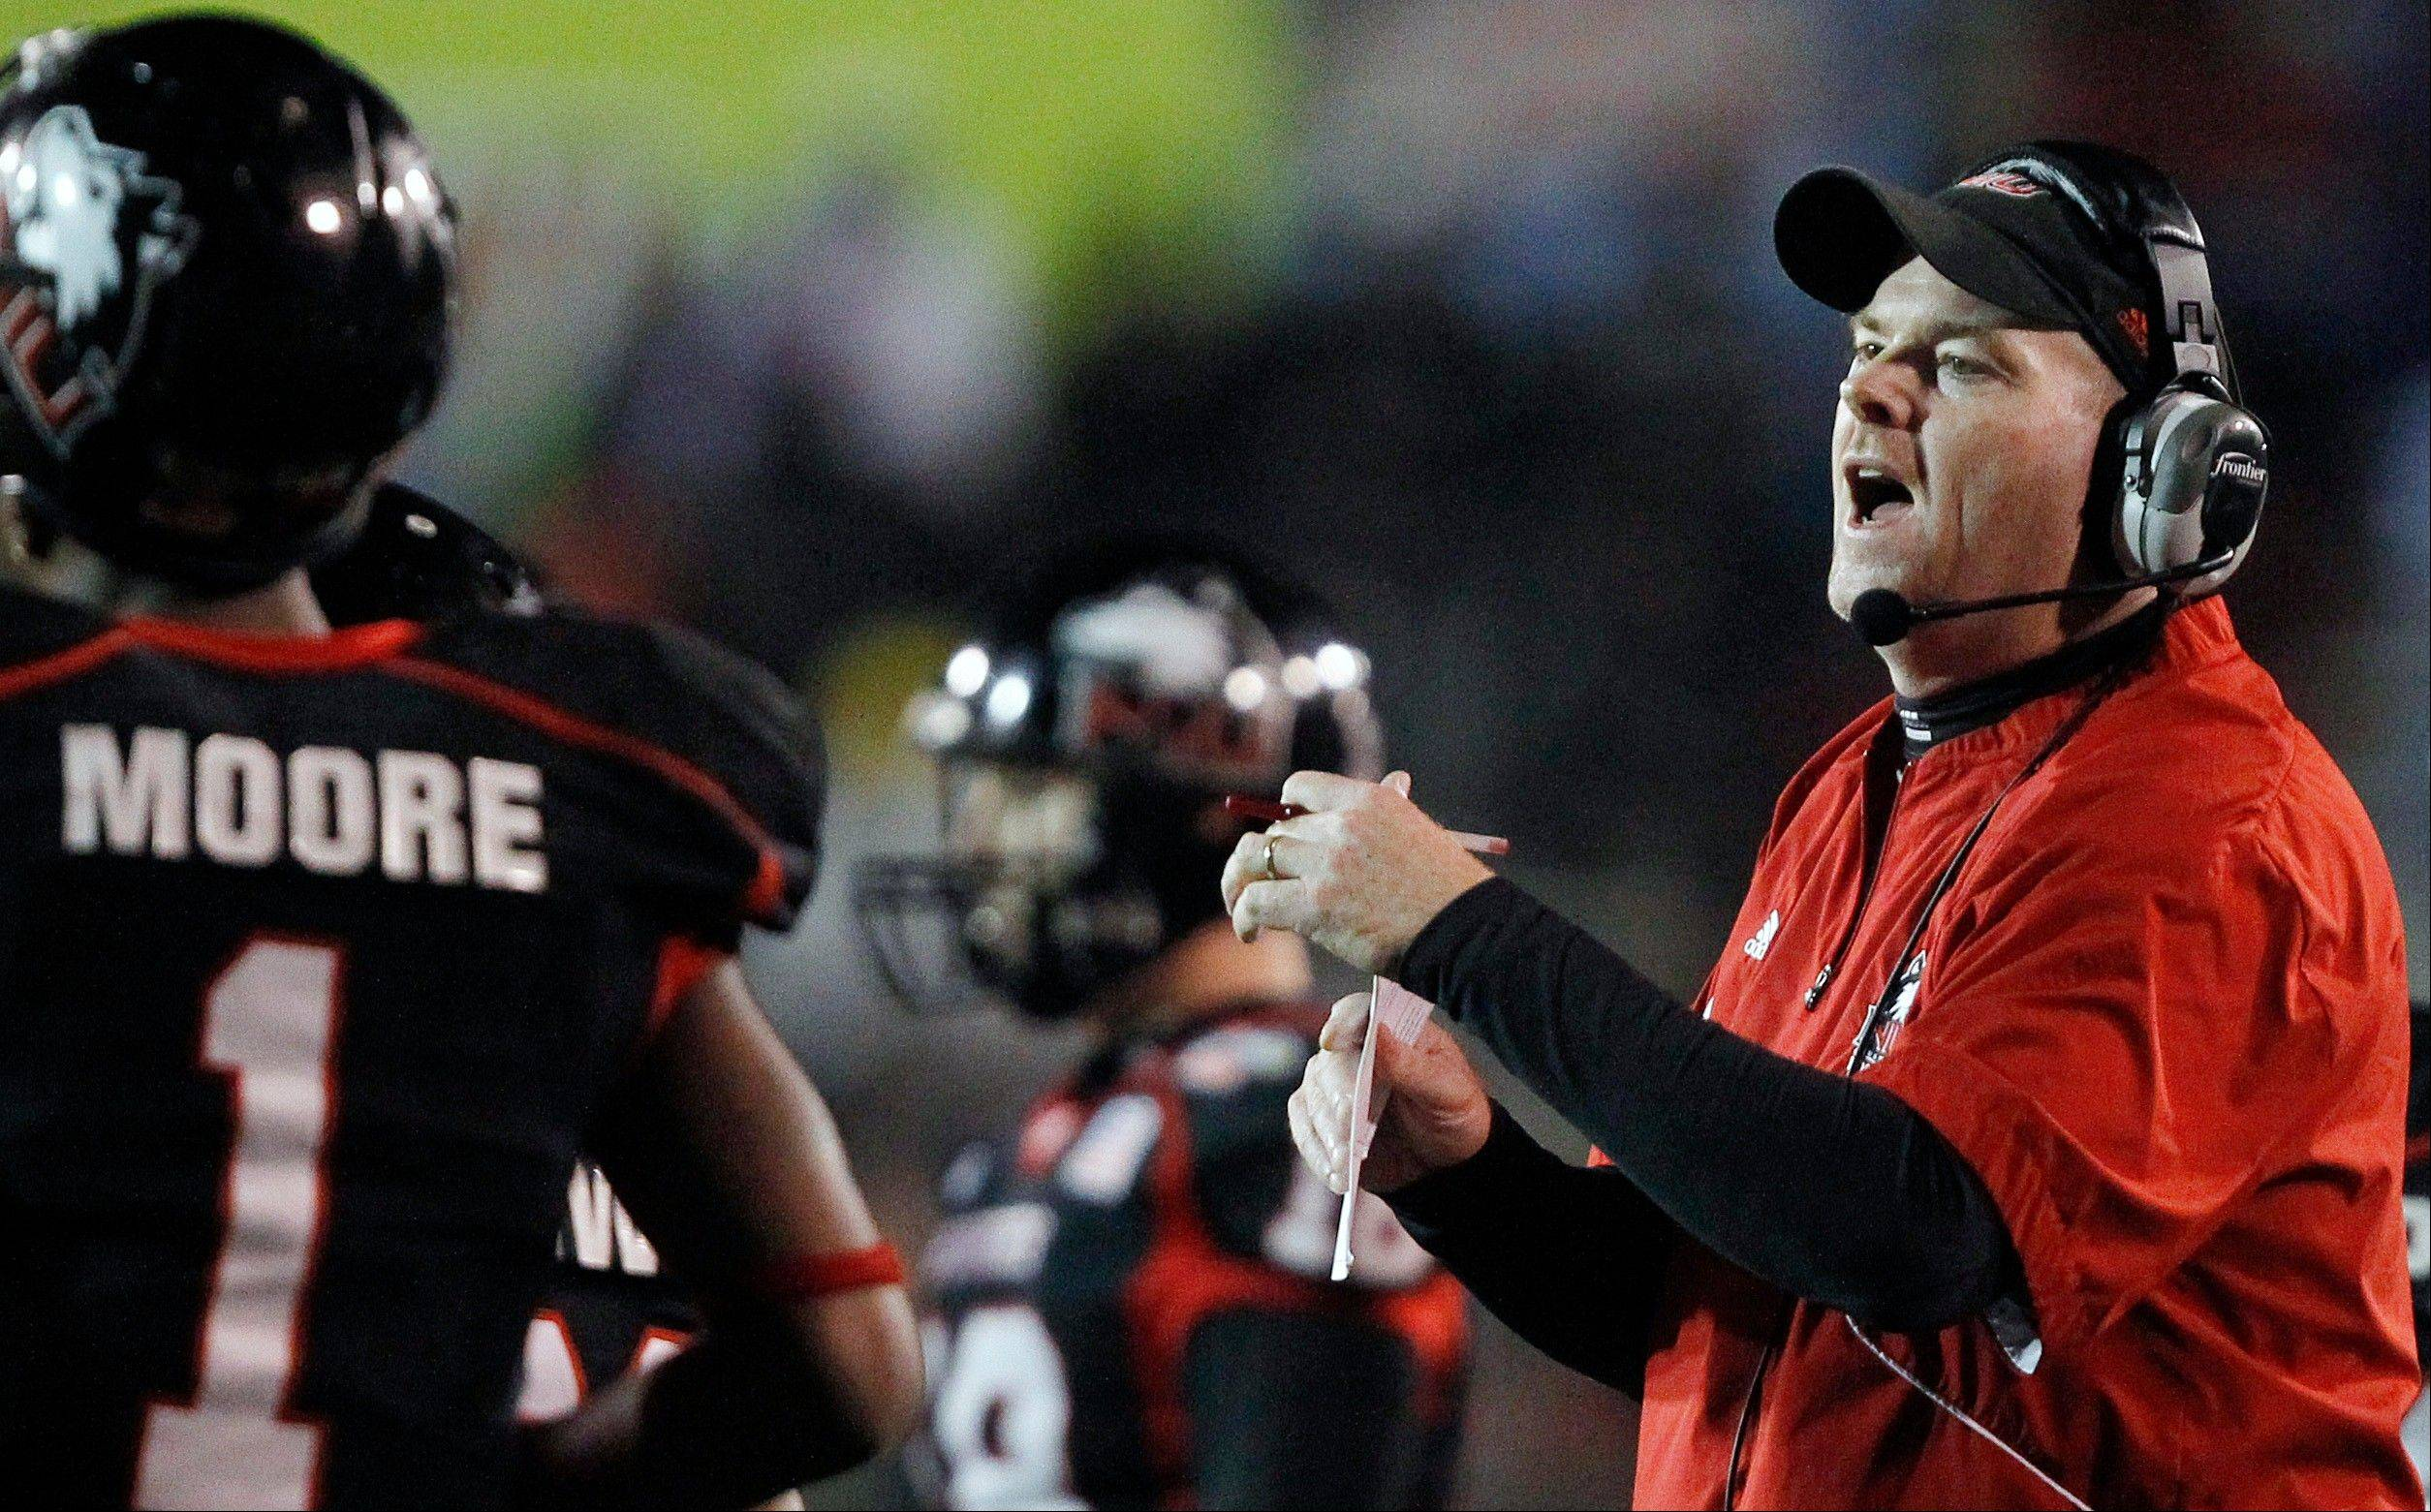 Northern Illinois coach Dave Doeren took his team to a bowl game last season and has the Huskies riding a nine-game win streak into their Sept. 1 opener against Iowa at Soldier Field.